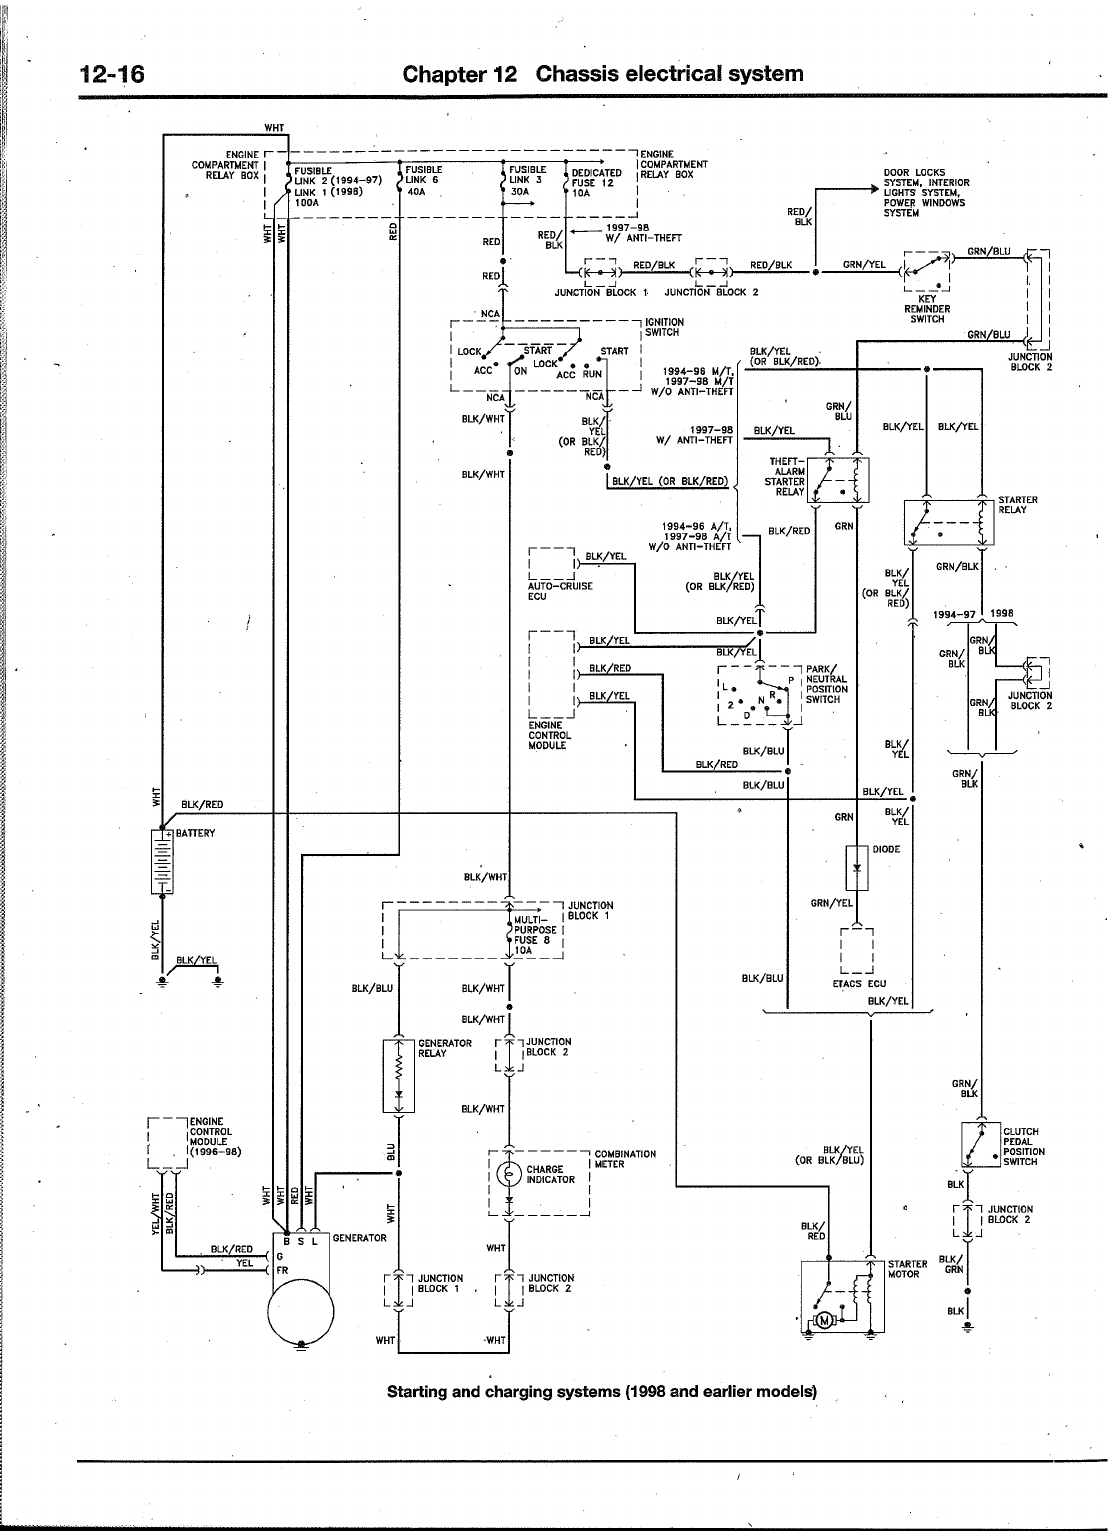 2001 Mitsubishi Galant Wiring Diagrams Worksheet And Diagram 2000 Eclipse Gs Fuse Box Free Download 1994 2003 Misc Document Pdf Rh Manuals Co Electrical